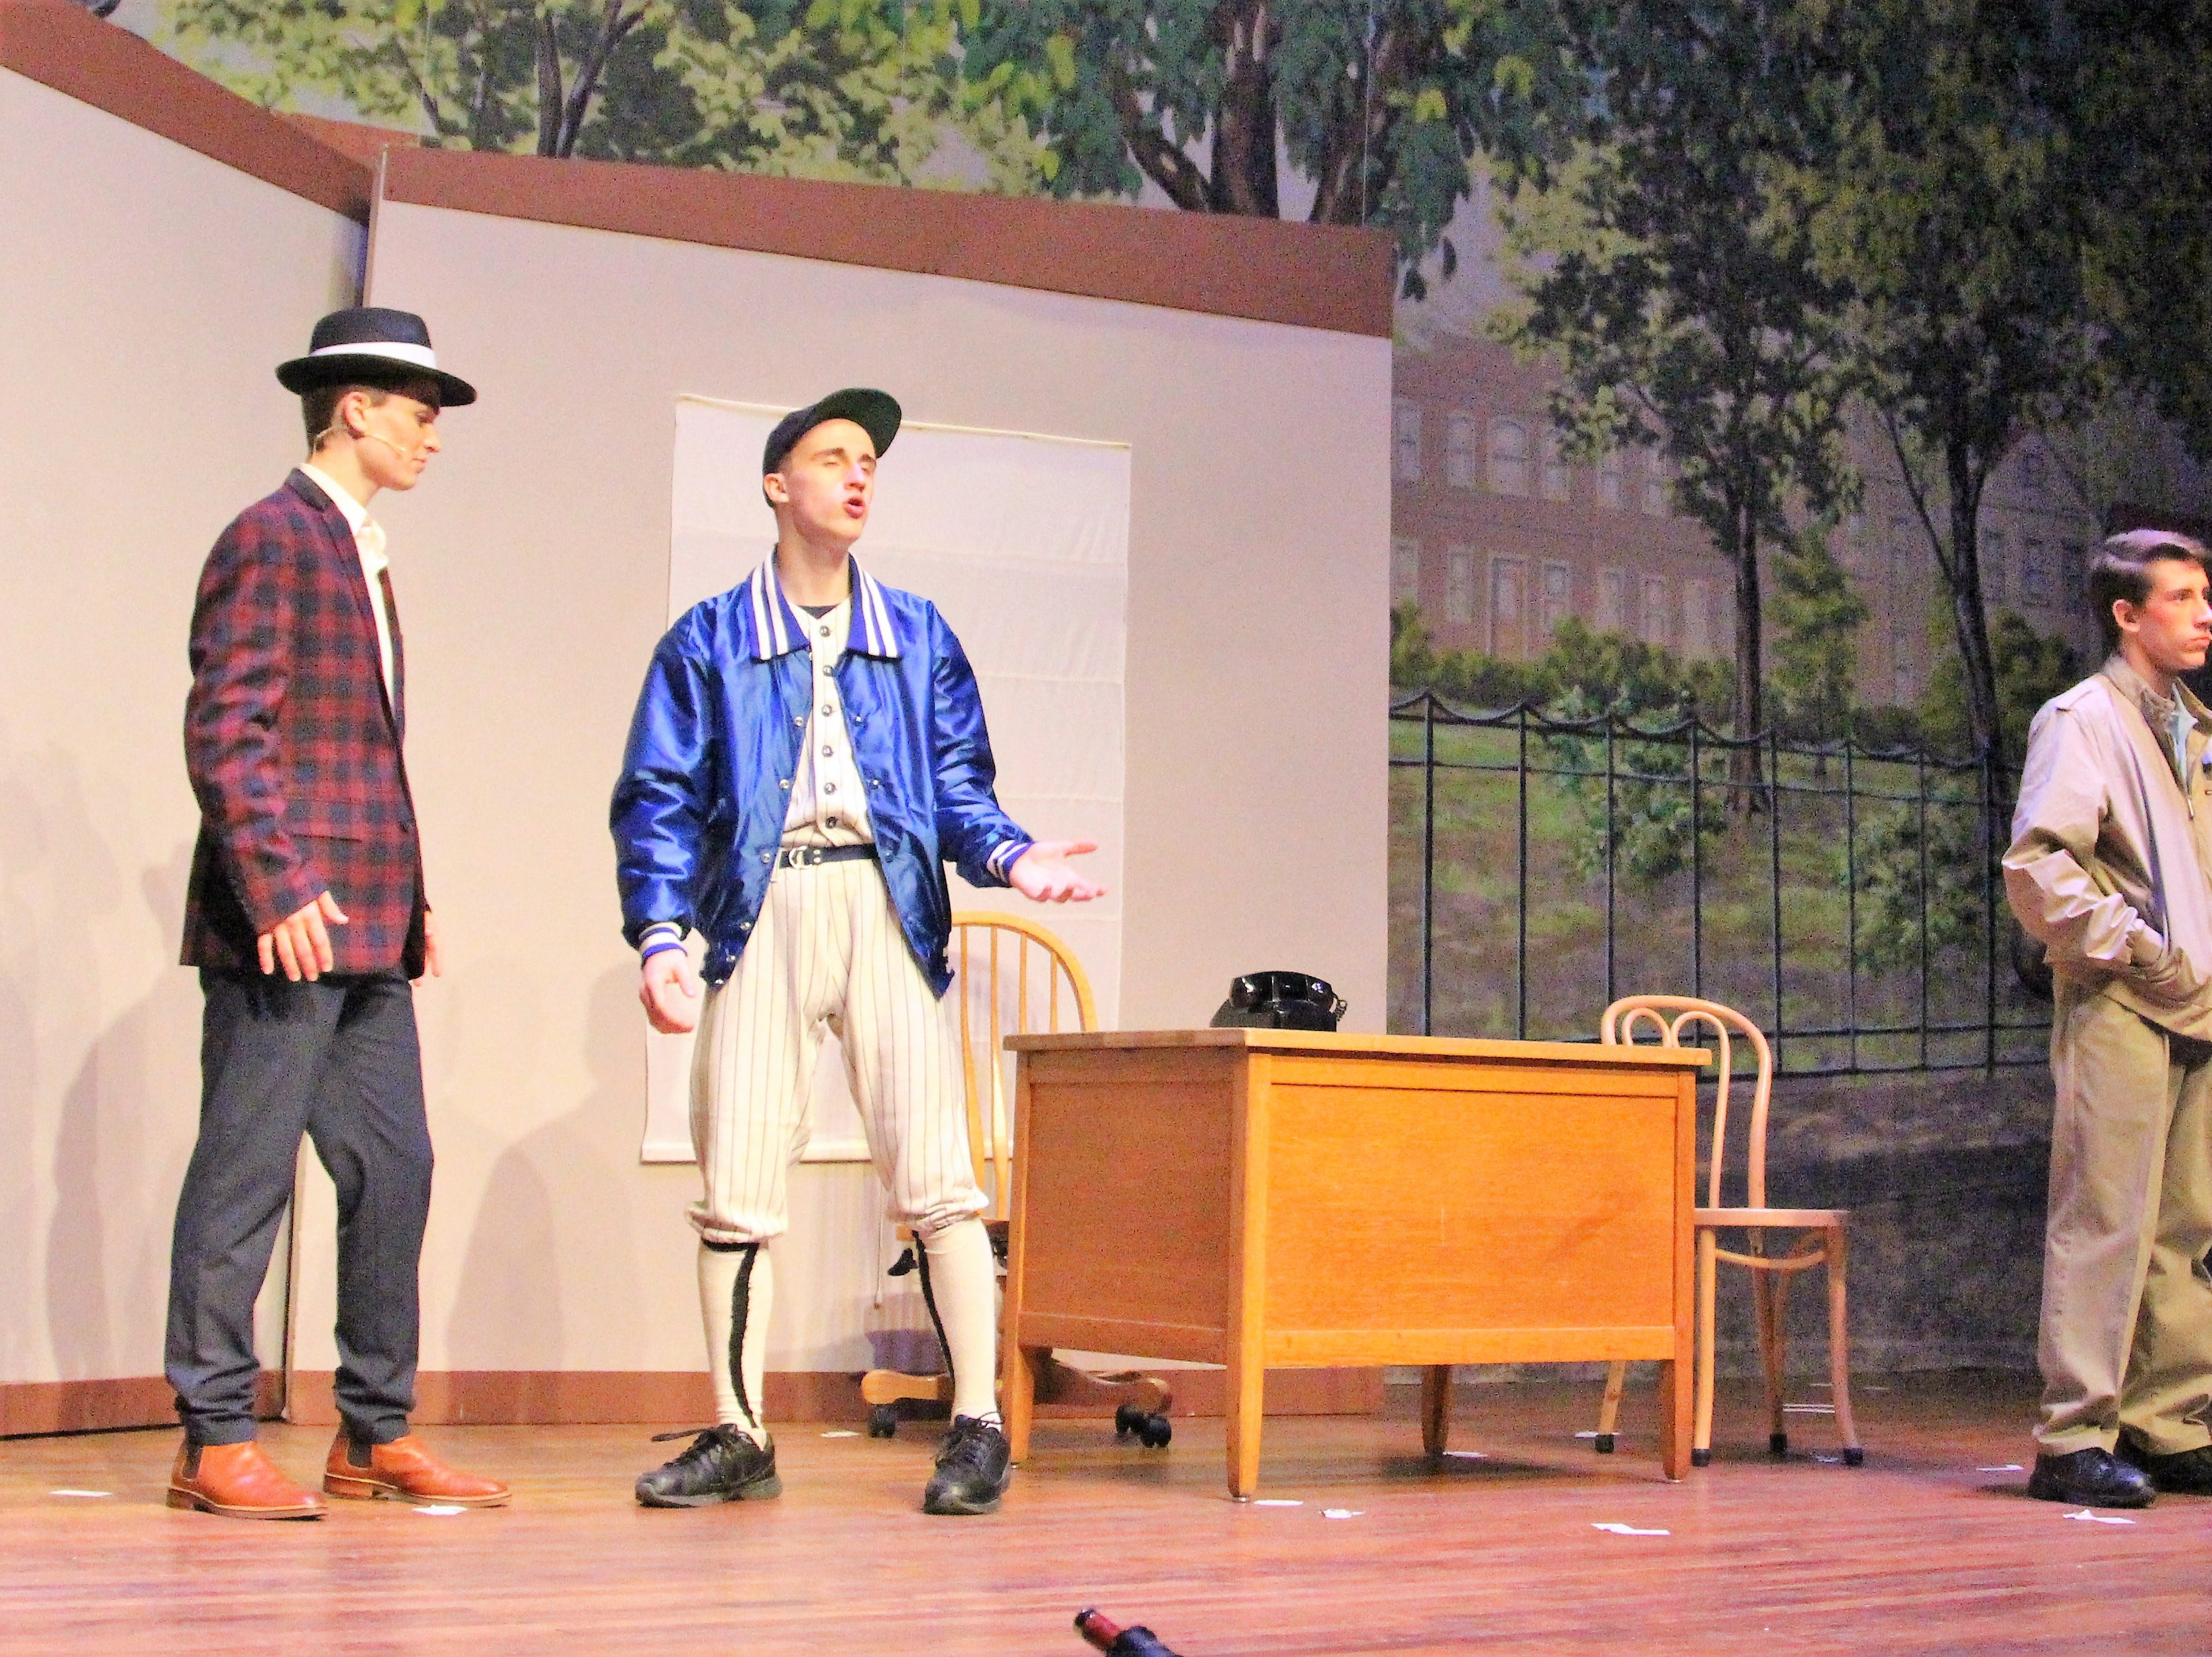 """Ryan Roth (center) walks on stage during a Wednesday dress rehearsal of """"Damn Yankees"""" as hardworking baseball manager Van Buren. The show is slated for this weekend at the Marion Palace Theatre."""